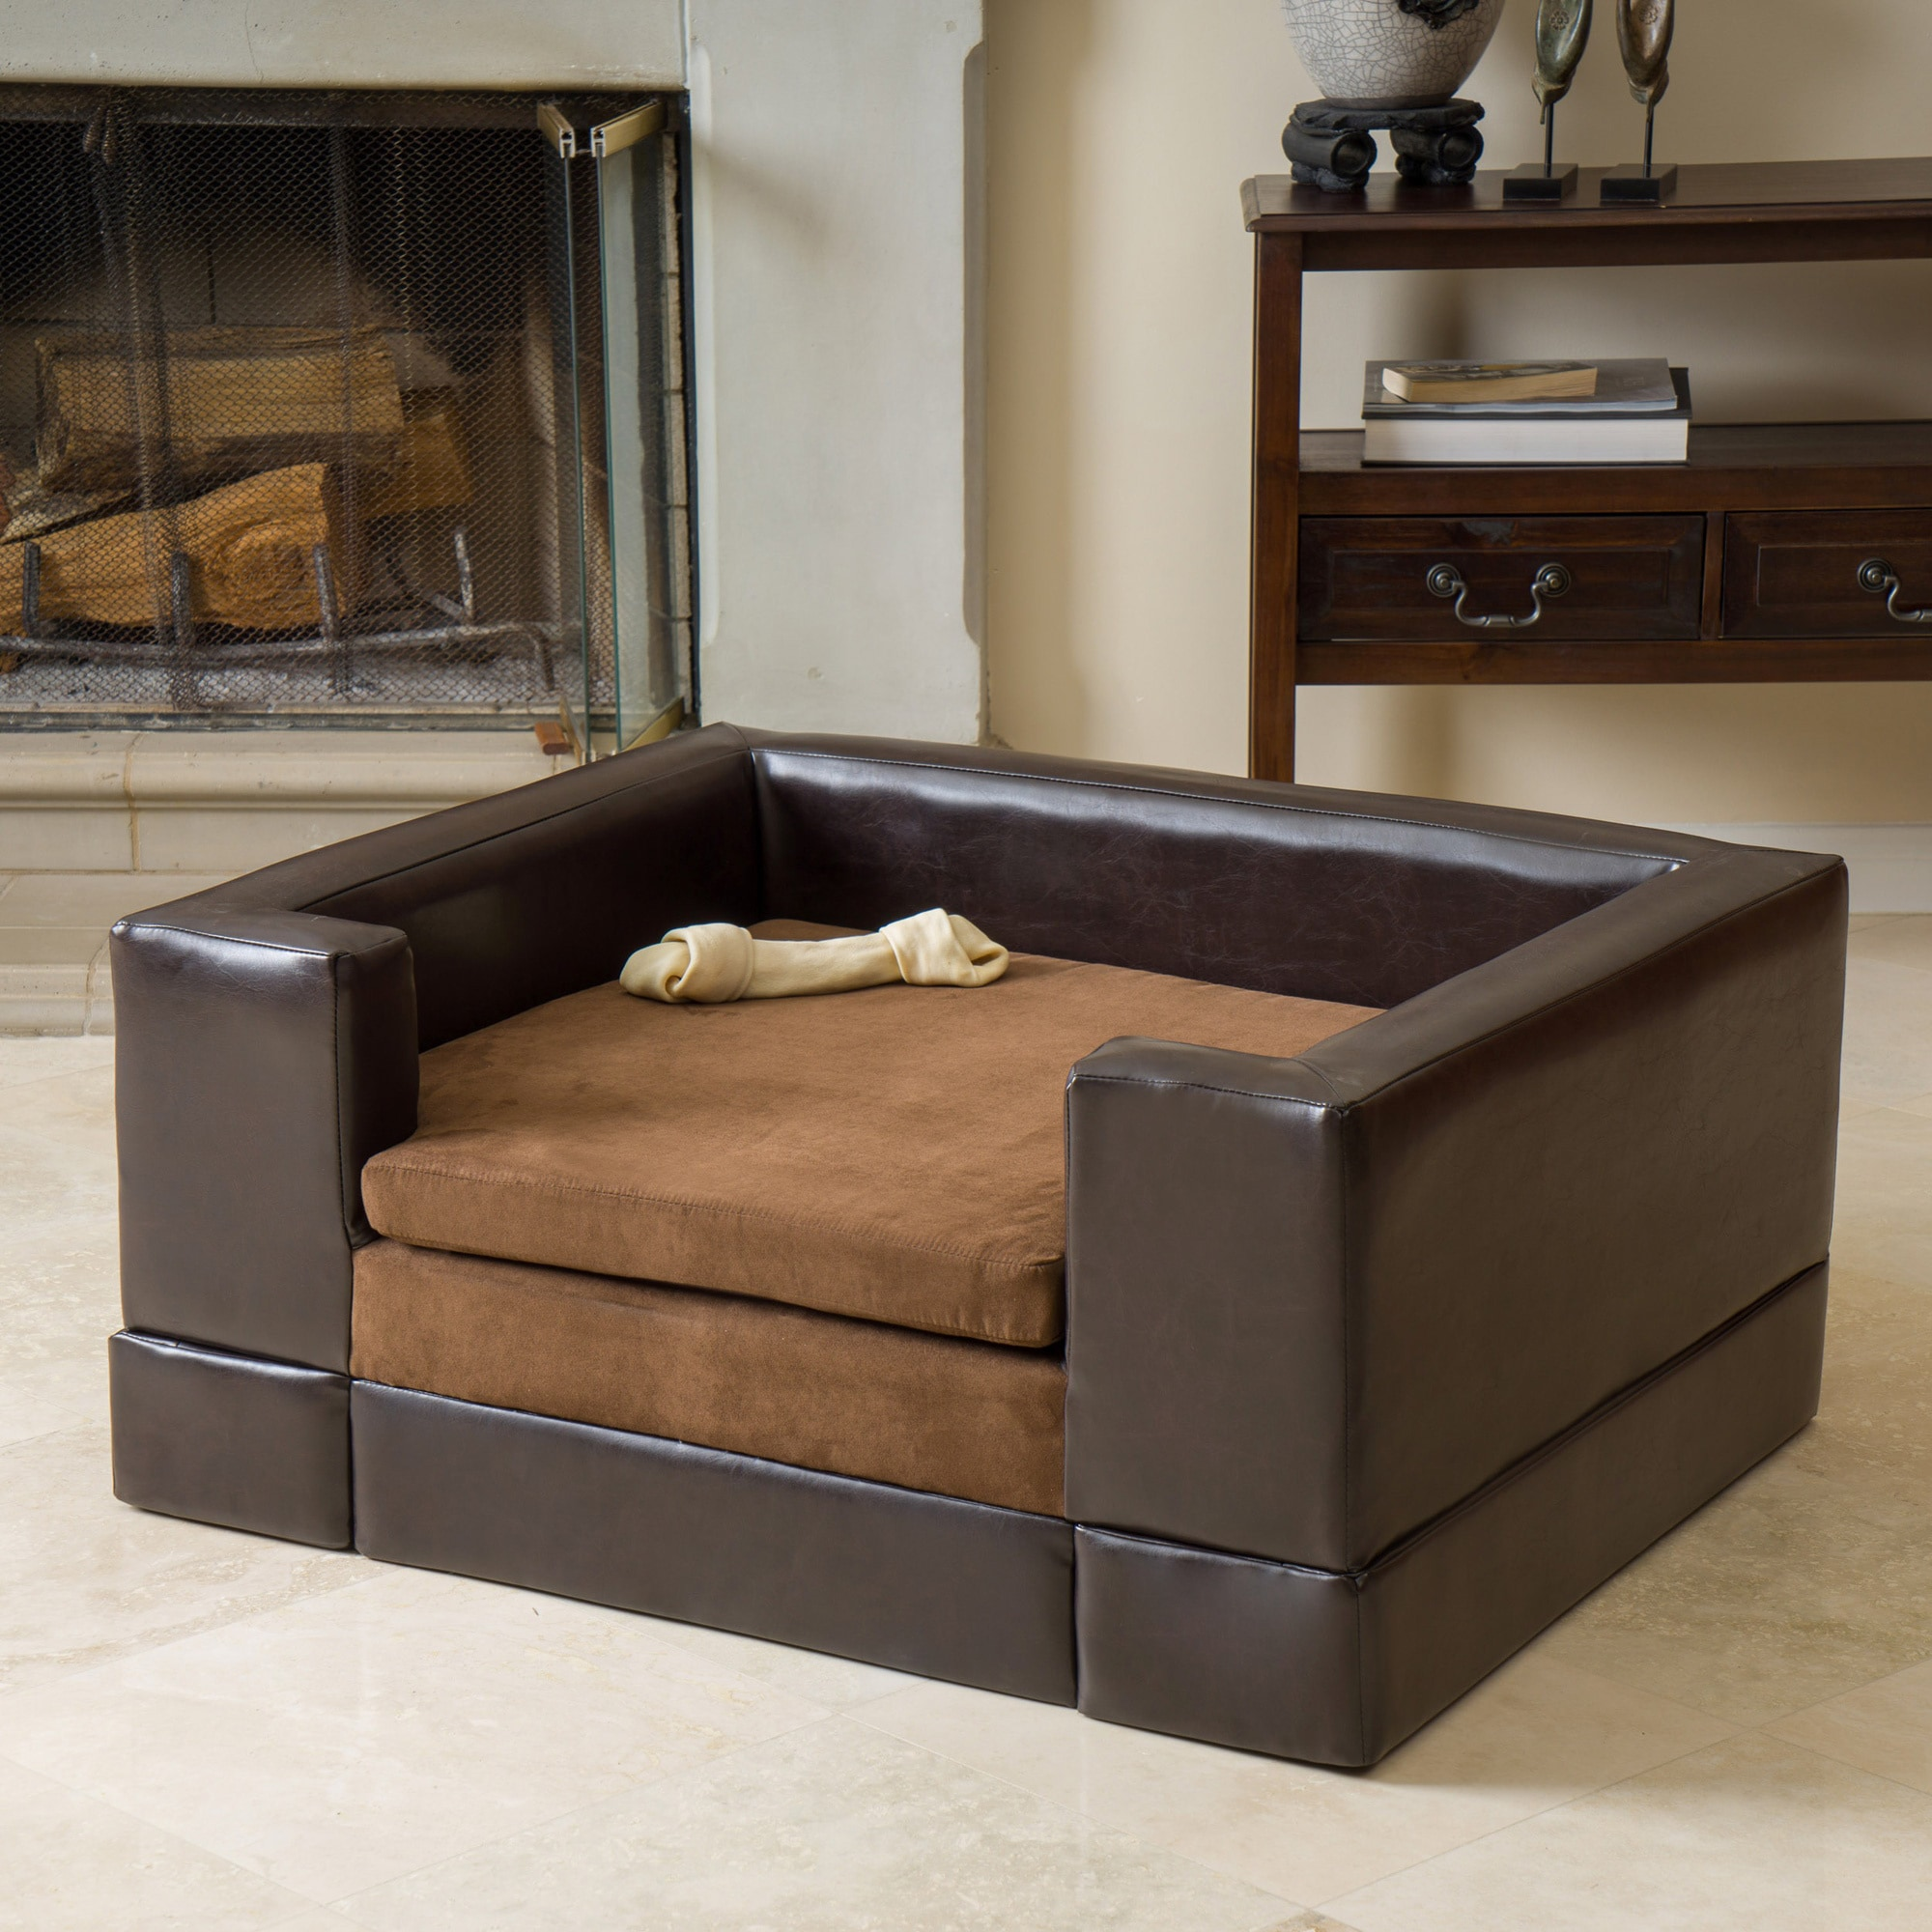 New Doggerville Brown Faux Leather Fabric Wood Large Rectangular